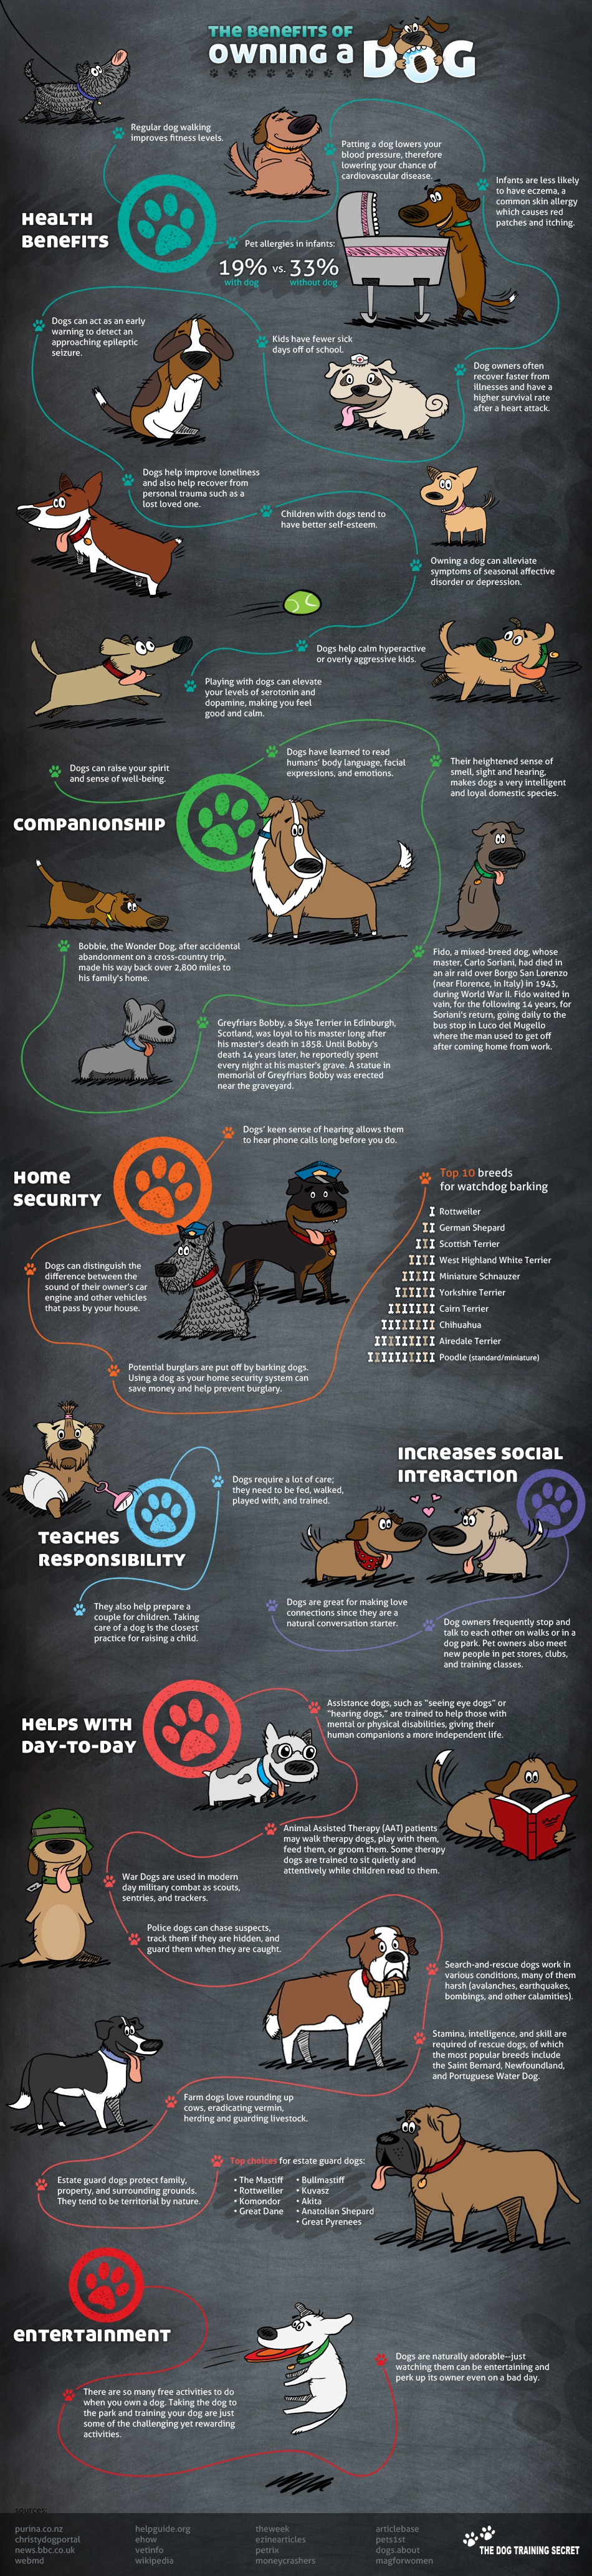 Discover The Amazing Health Benefits Of Owning a Dog